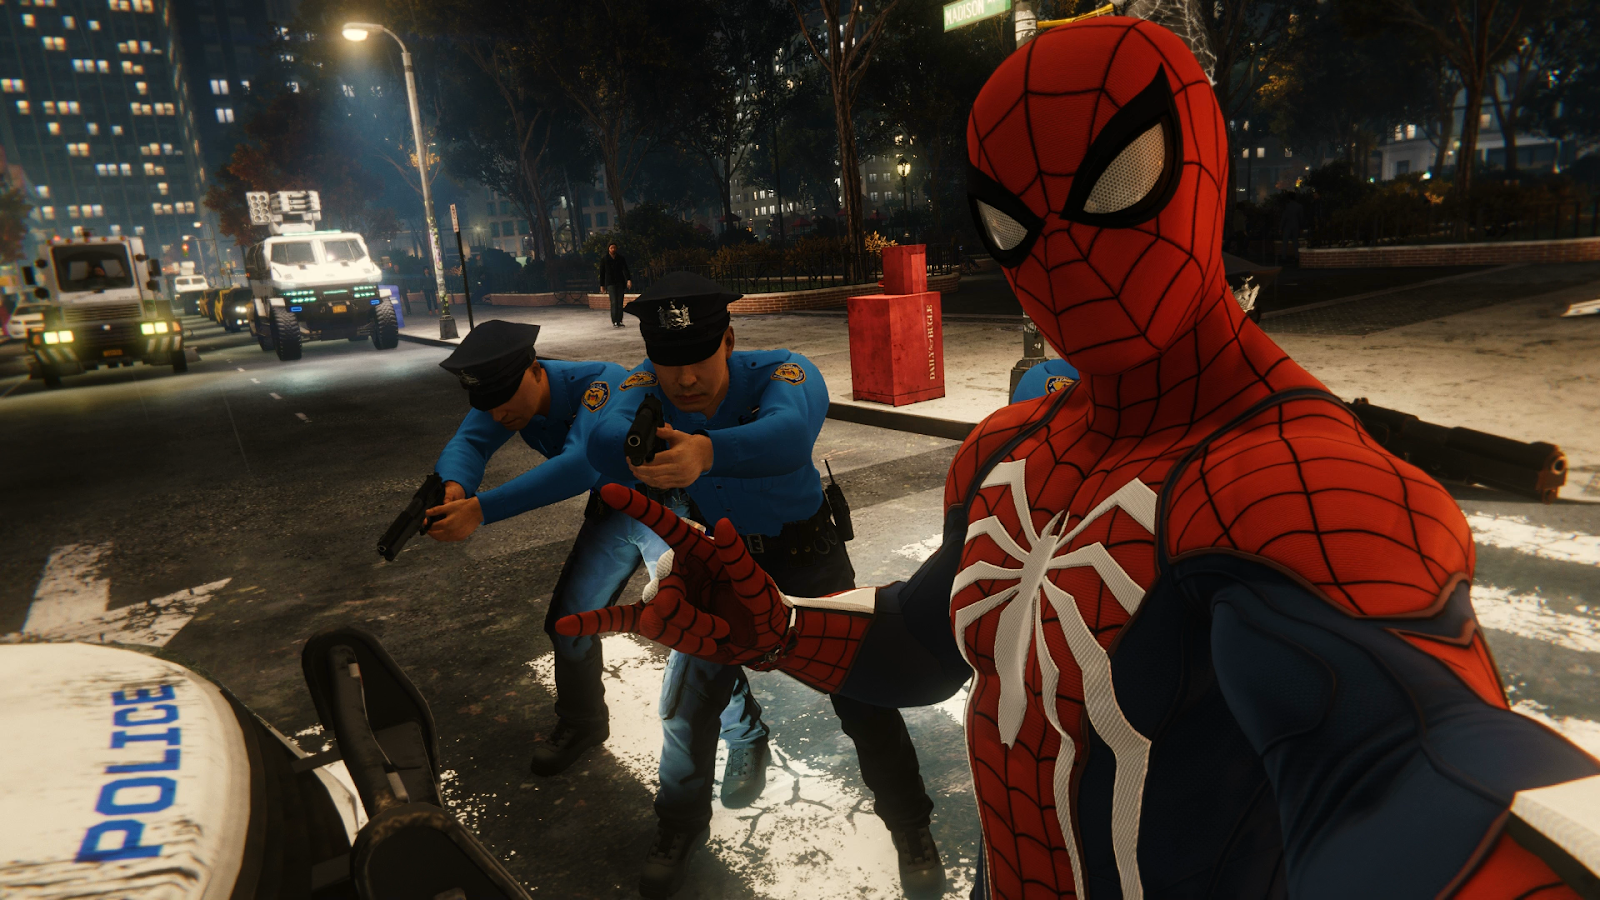 Spider-Man's Take On Police Feels Out Of Touch